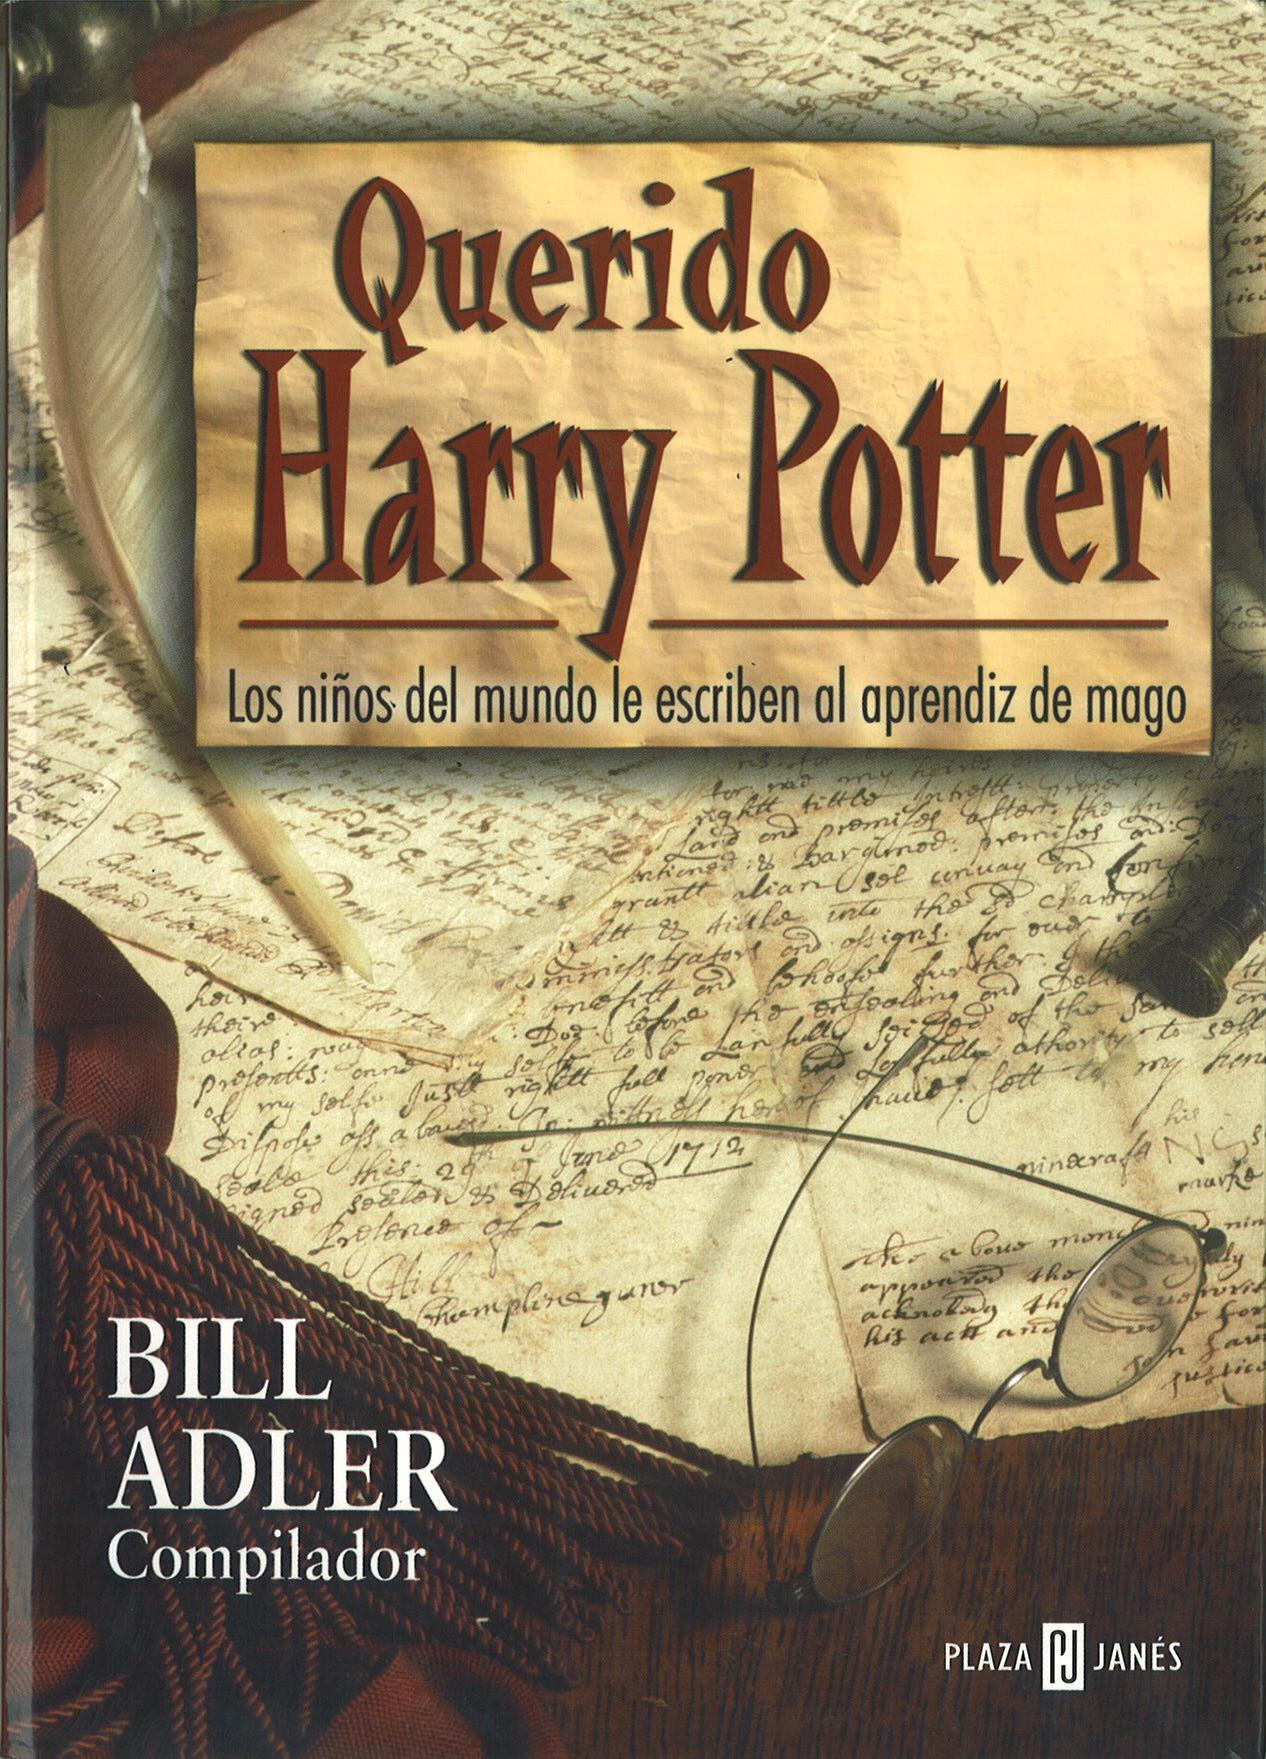 Pack Todos Los Libros De Harry Potter Recomendación Literaria Querido Harry Potter Bill